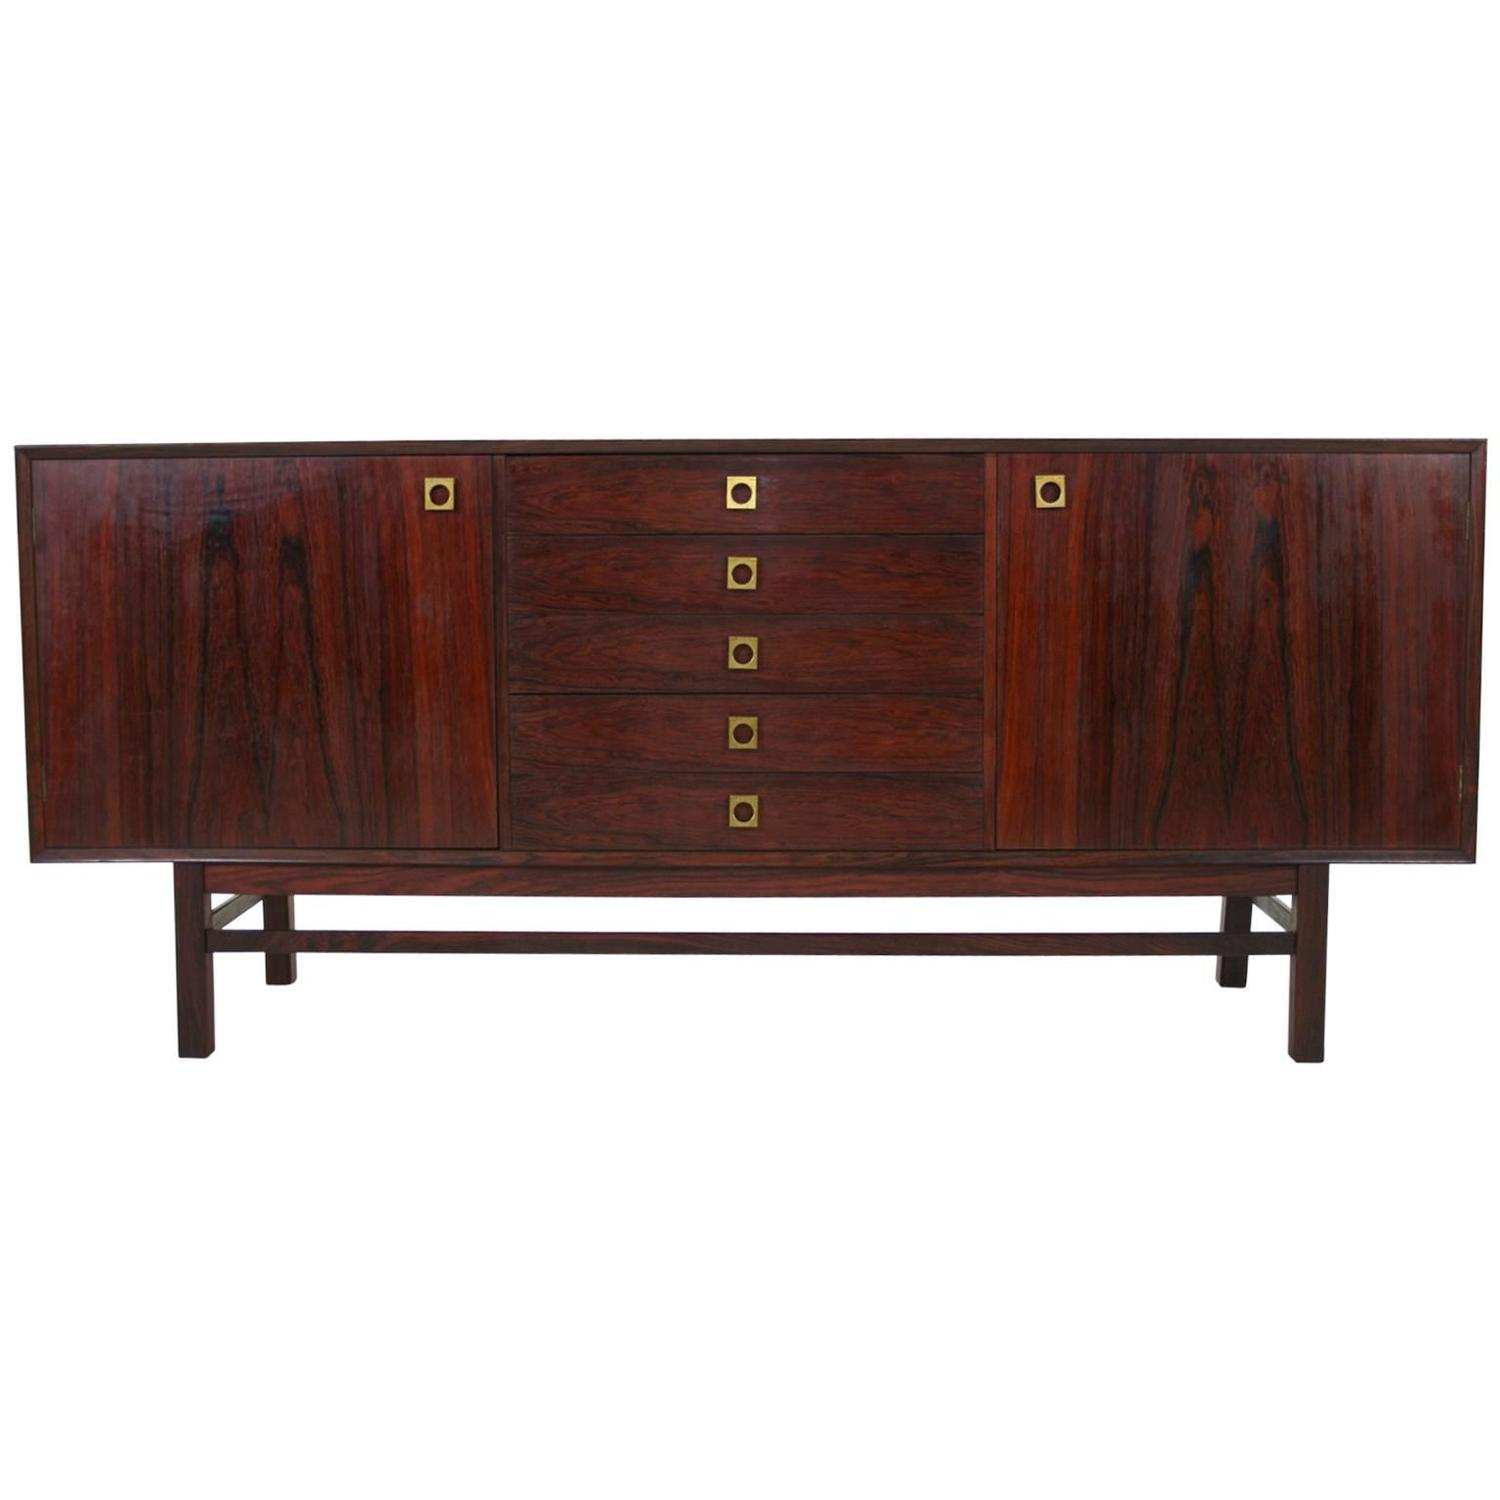 Danish Mid Century Modern Rosewood Credenza By Brouer At